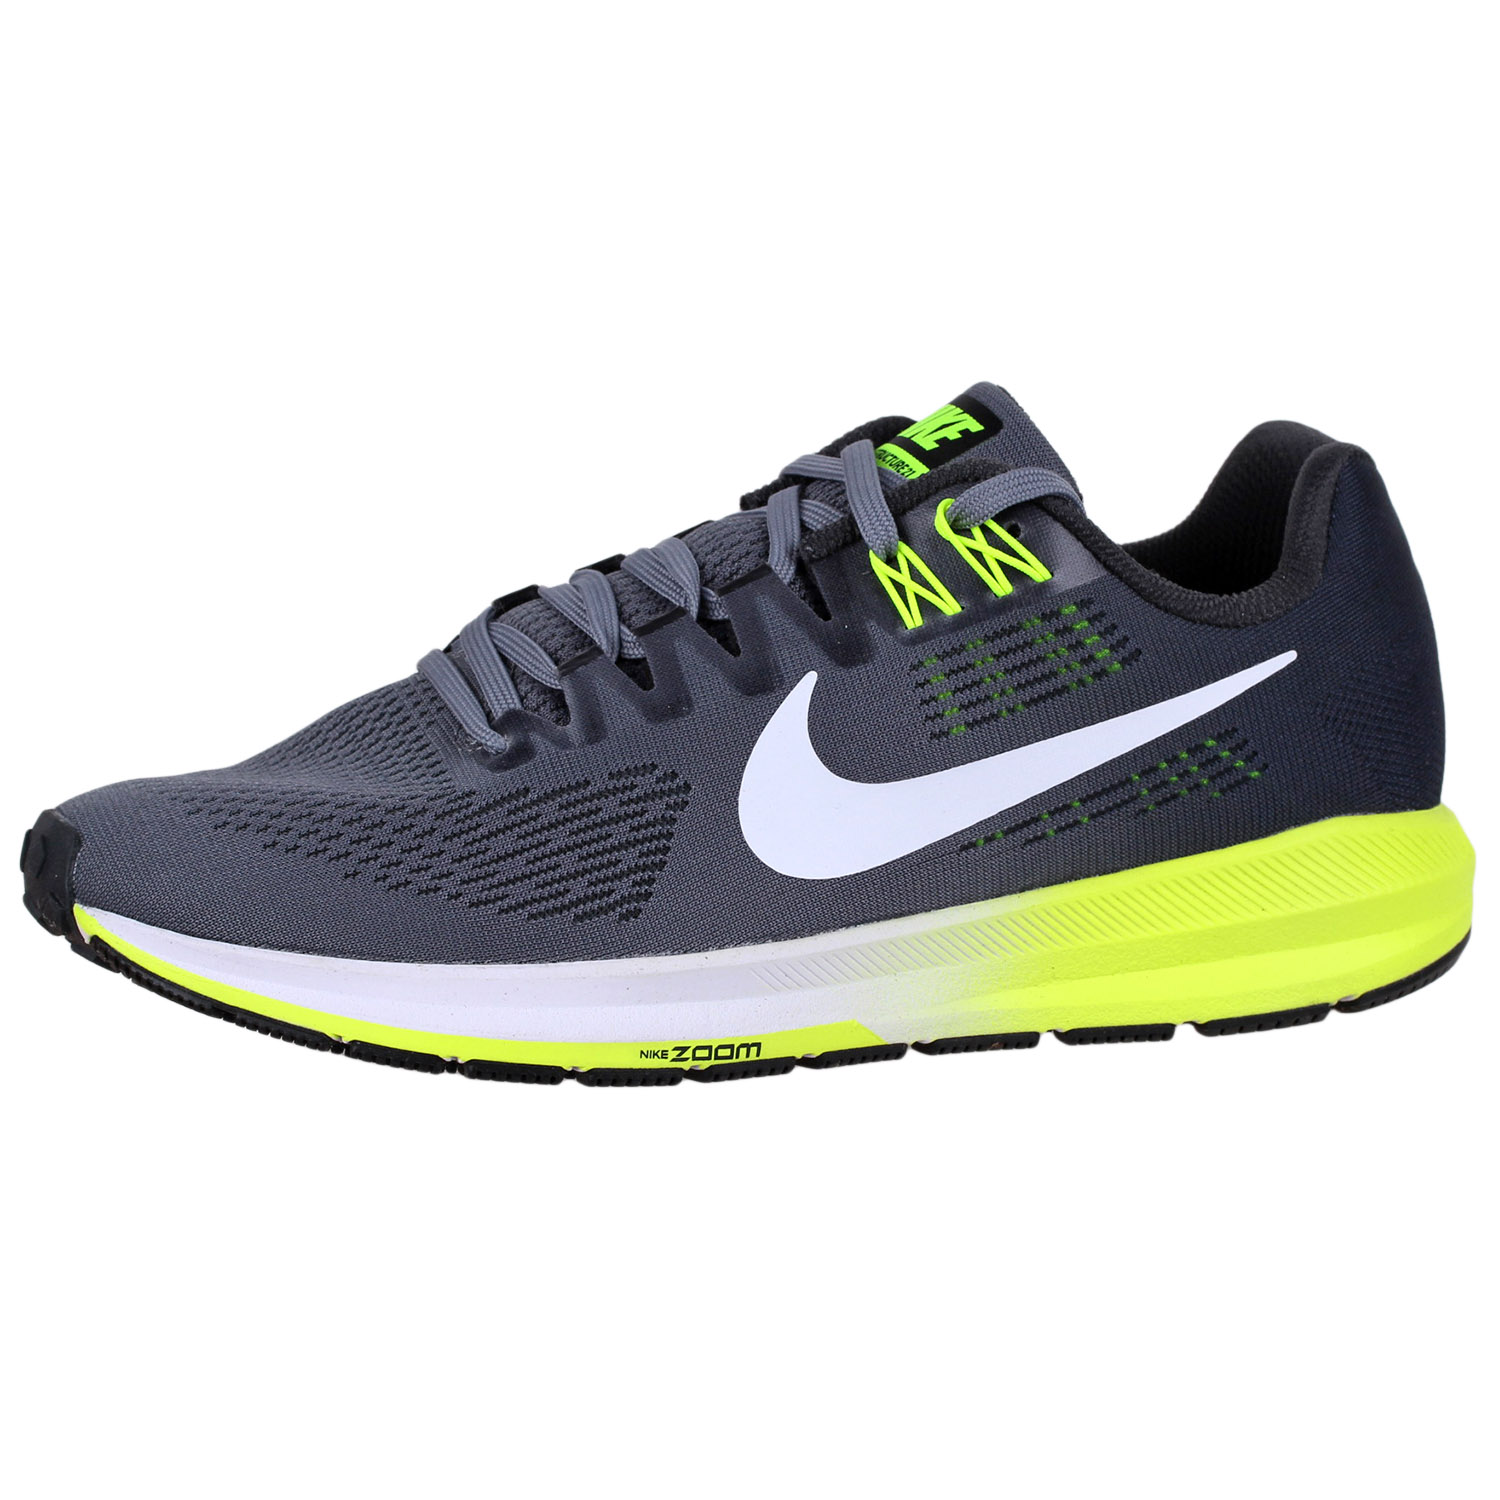 size 40 f4a1e 3414c Details about Men's Nike Air Zoom Structure 21 Running Shoes 904695 Grey 8